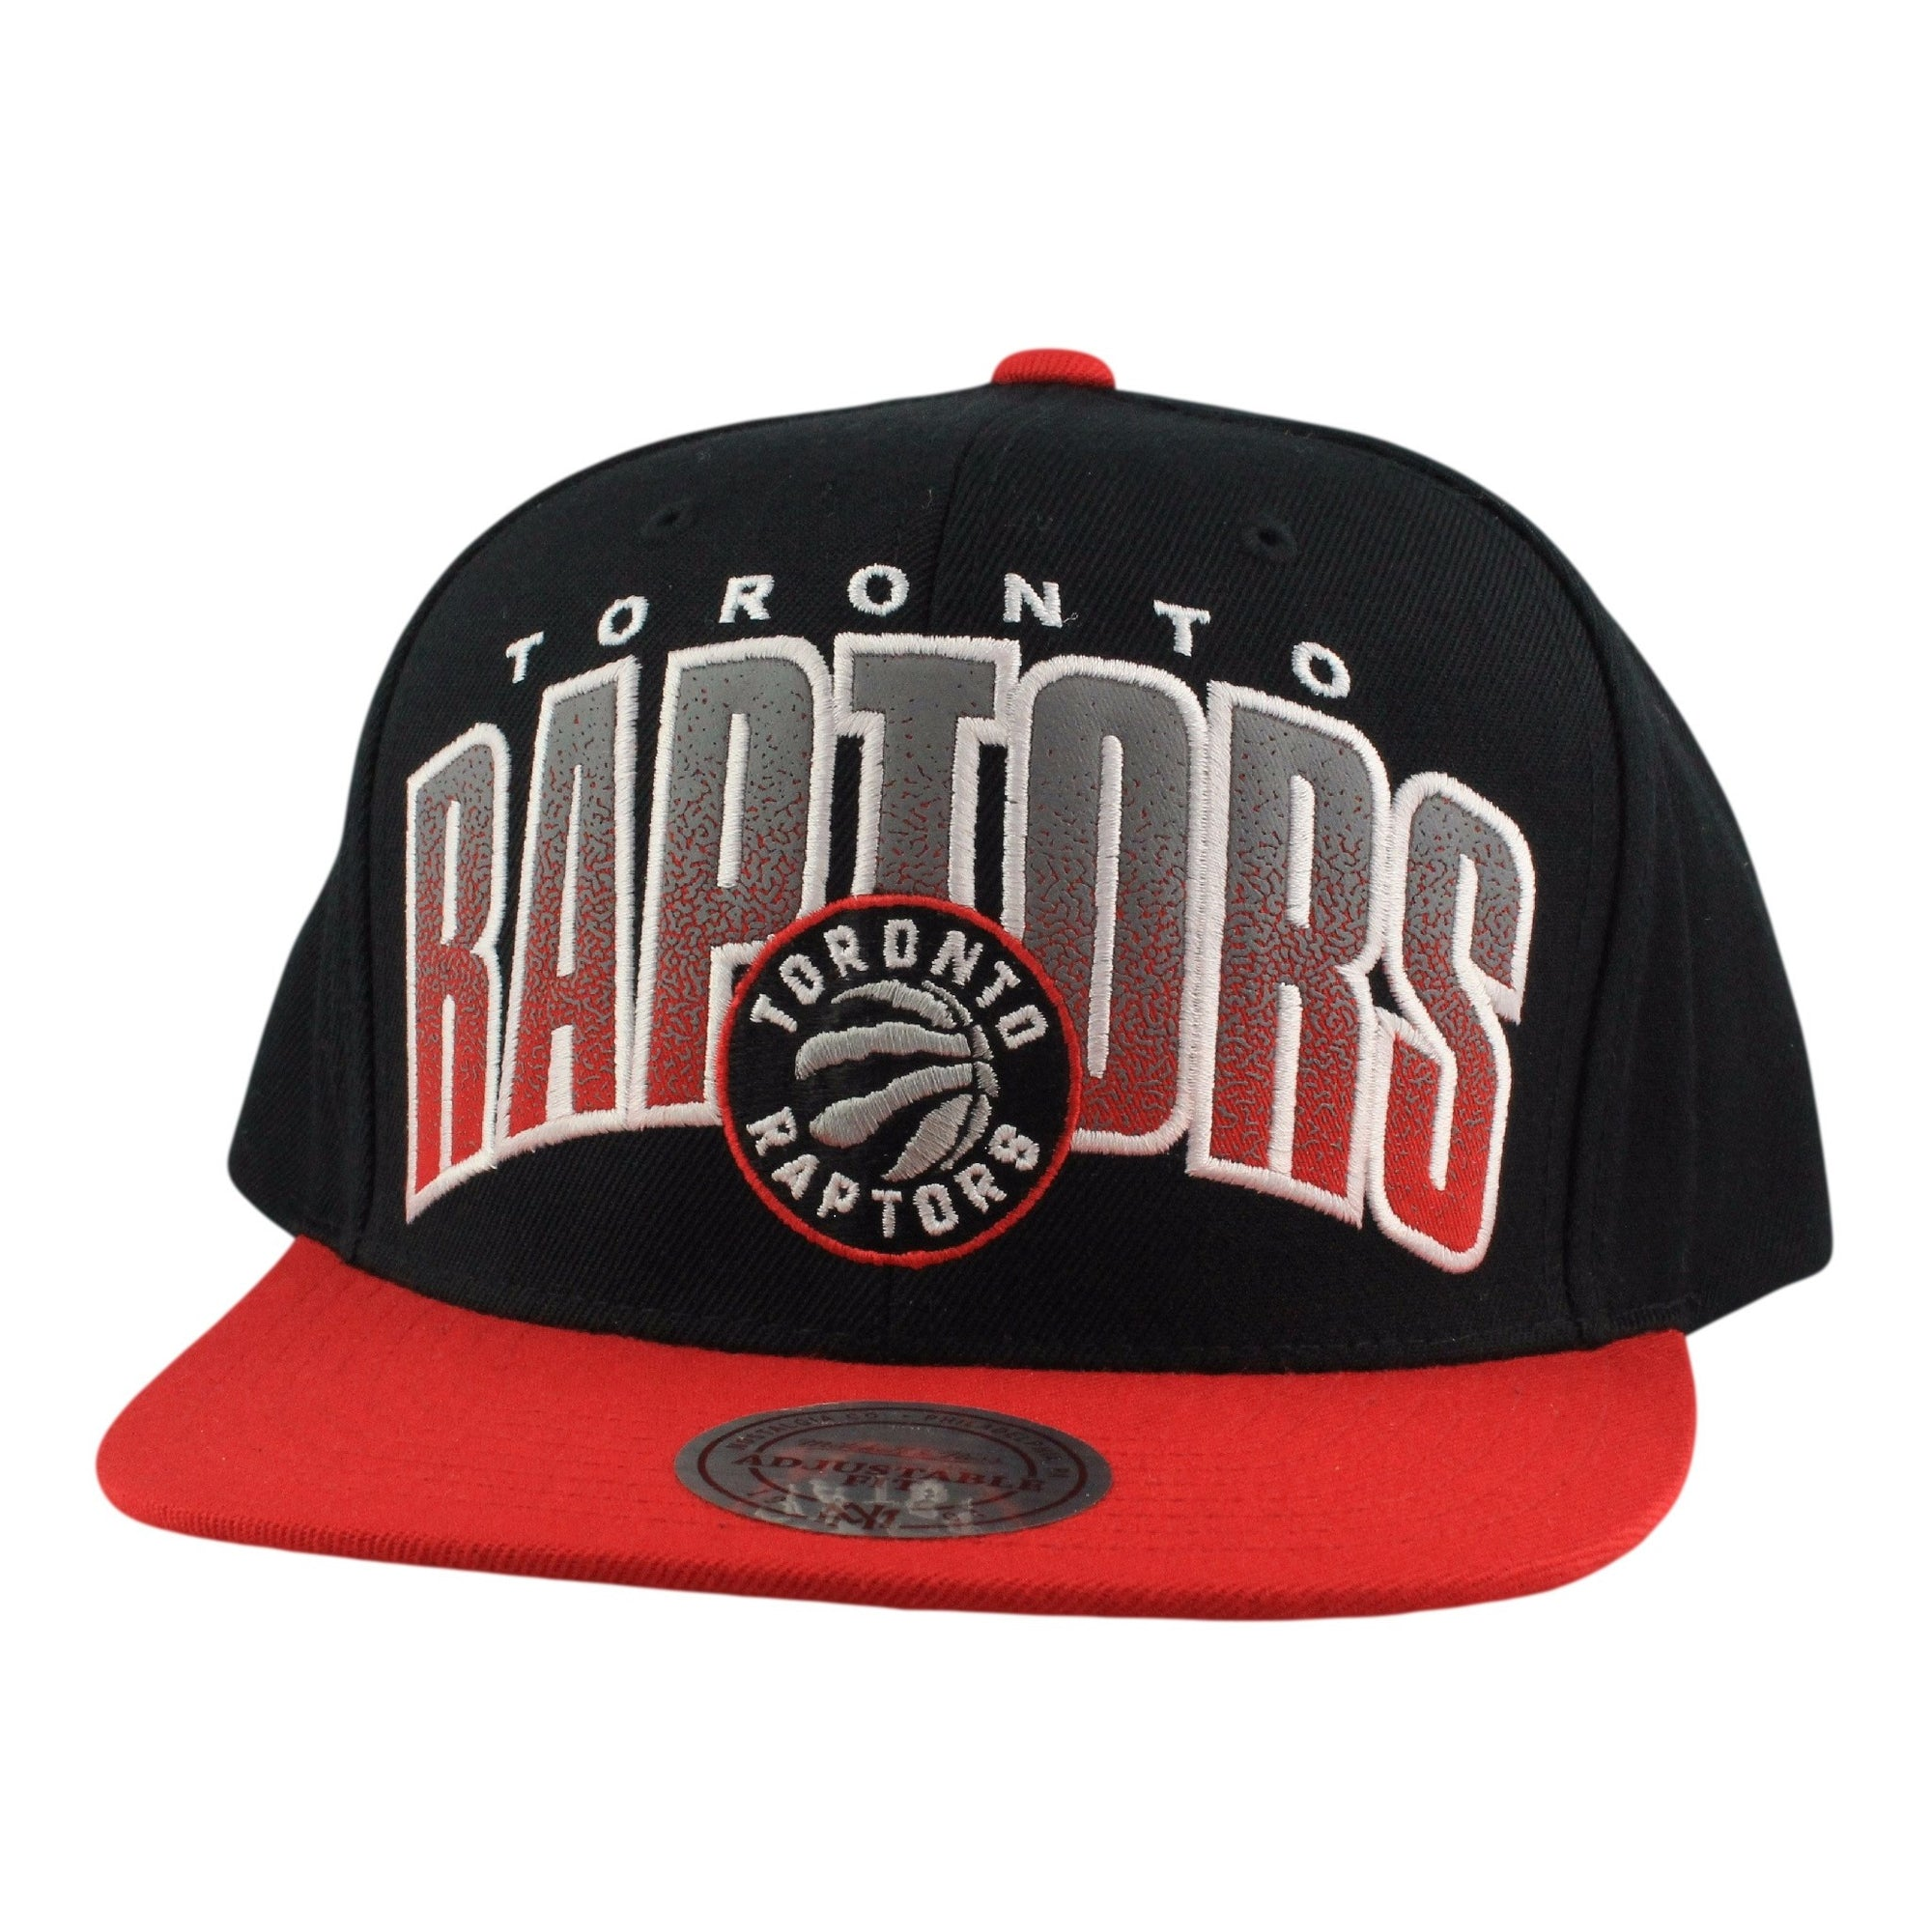 a779260b319 Mitchell and Ness Toronto Raptors Double Bonus Black Red Snapback